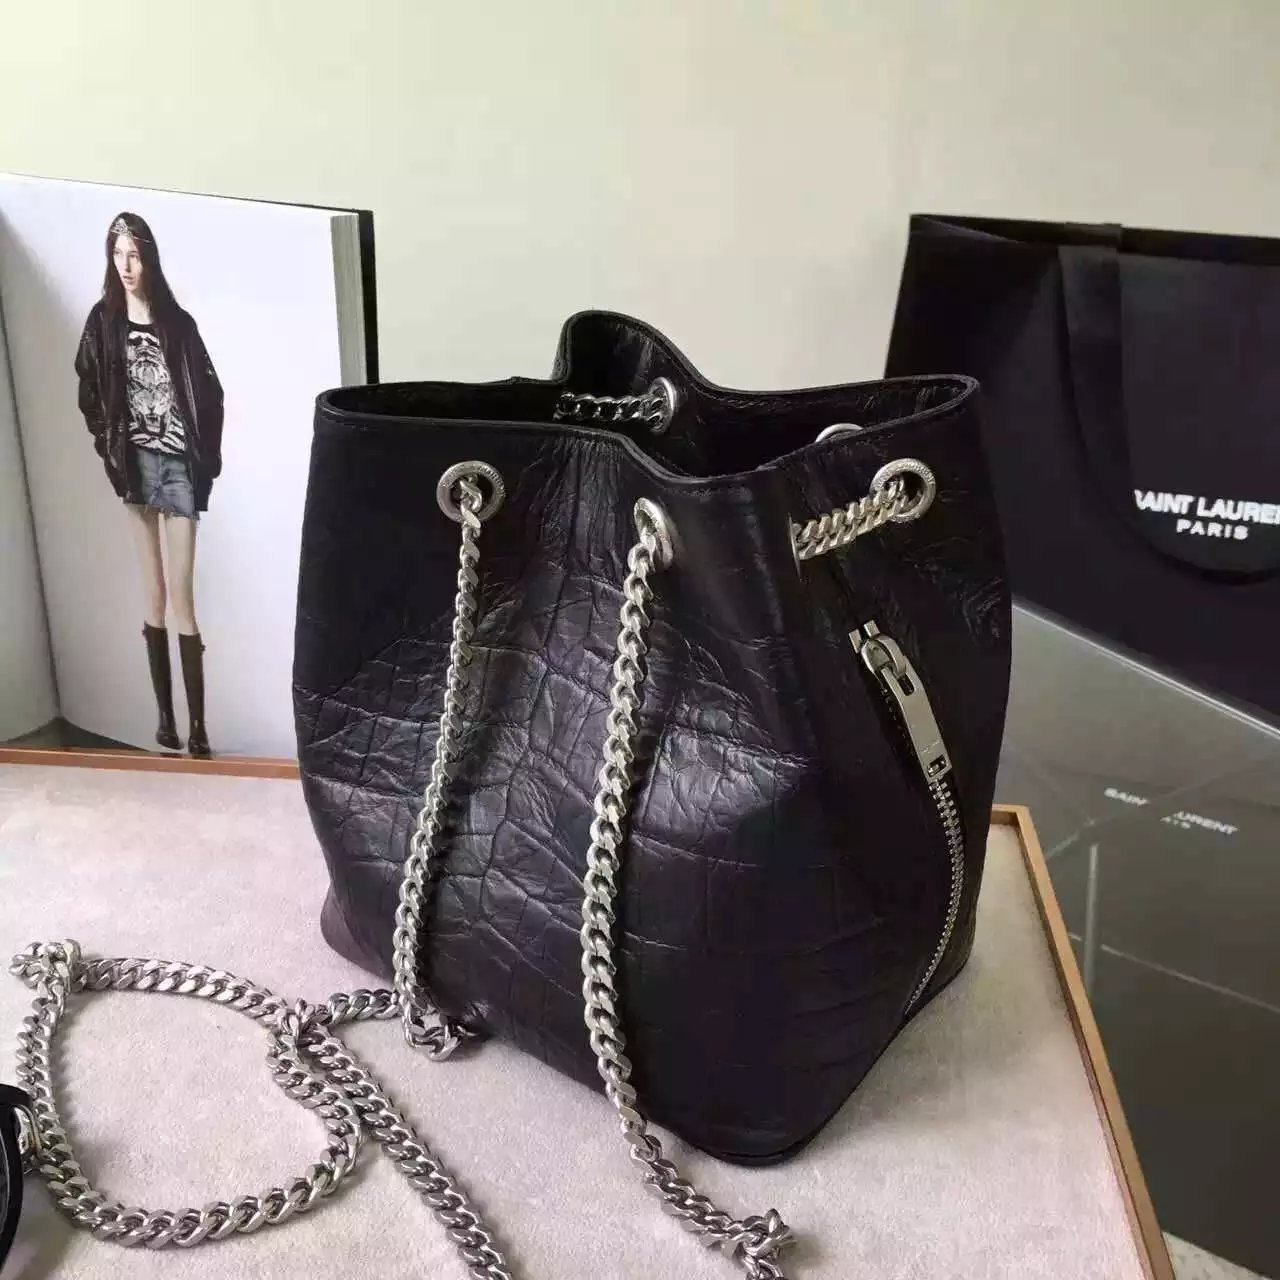 Limited Edition!2016 New Saint Laurent Bag Cheap Sale-Saint Laurent Classic Baby Emmanuelle Chain Bucket Bag in Black Crocodile Embossed Leather